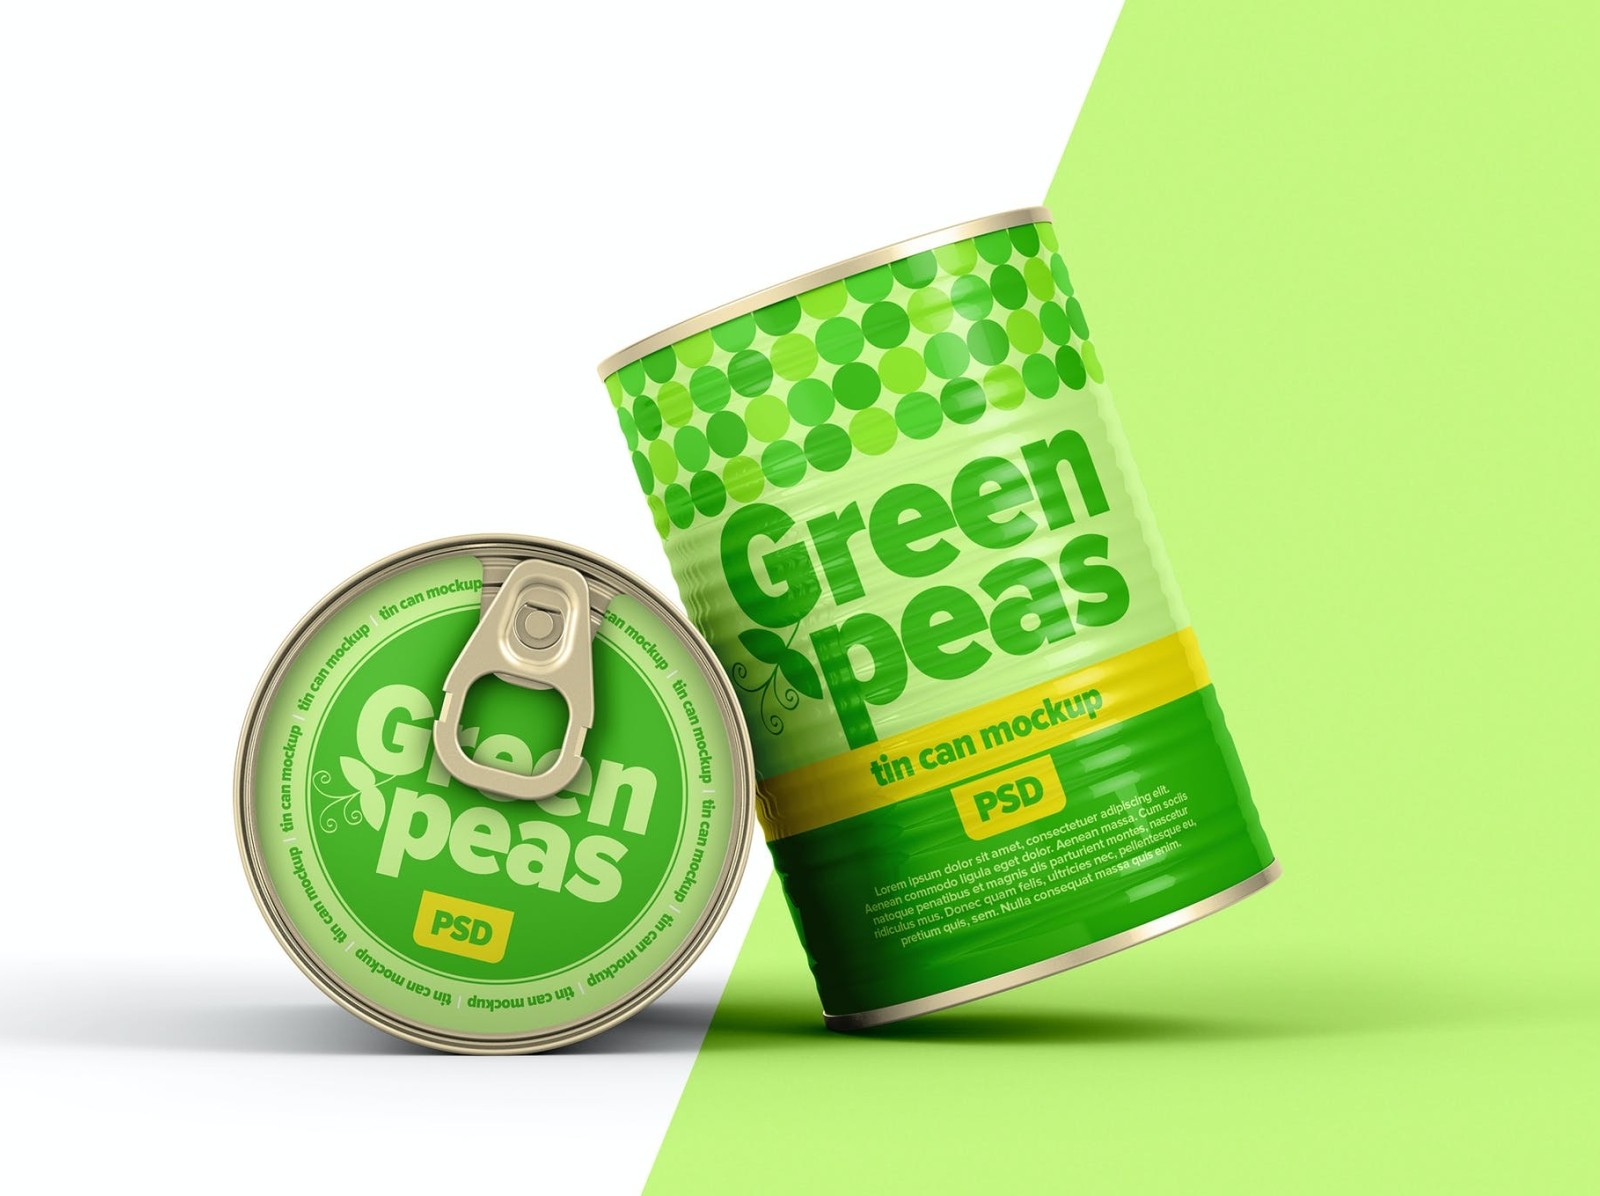 Tin Can Mockup packaging design package packaging mockup tin can typography ux vector ui 3d logo illustration graphic design design branding